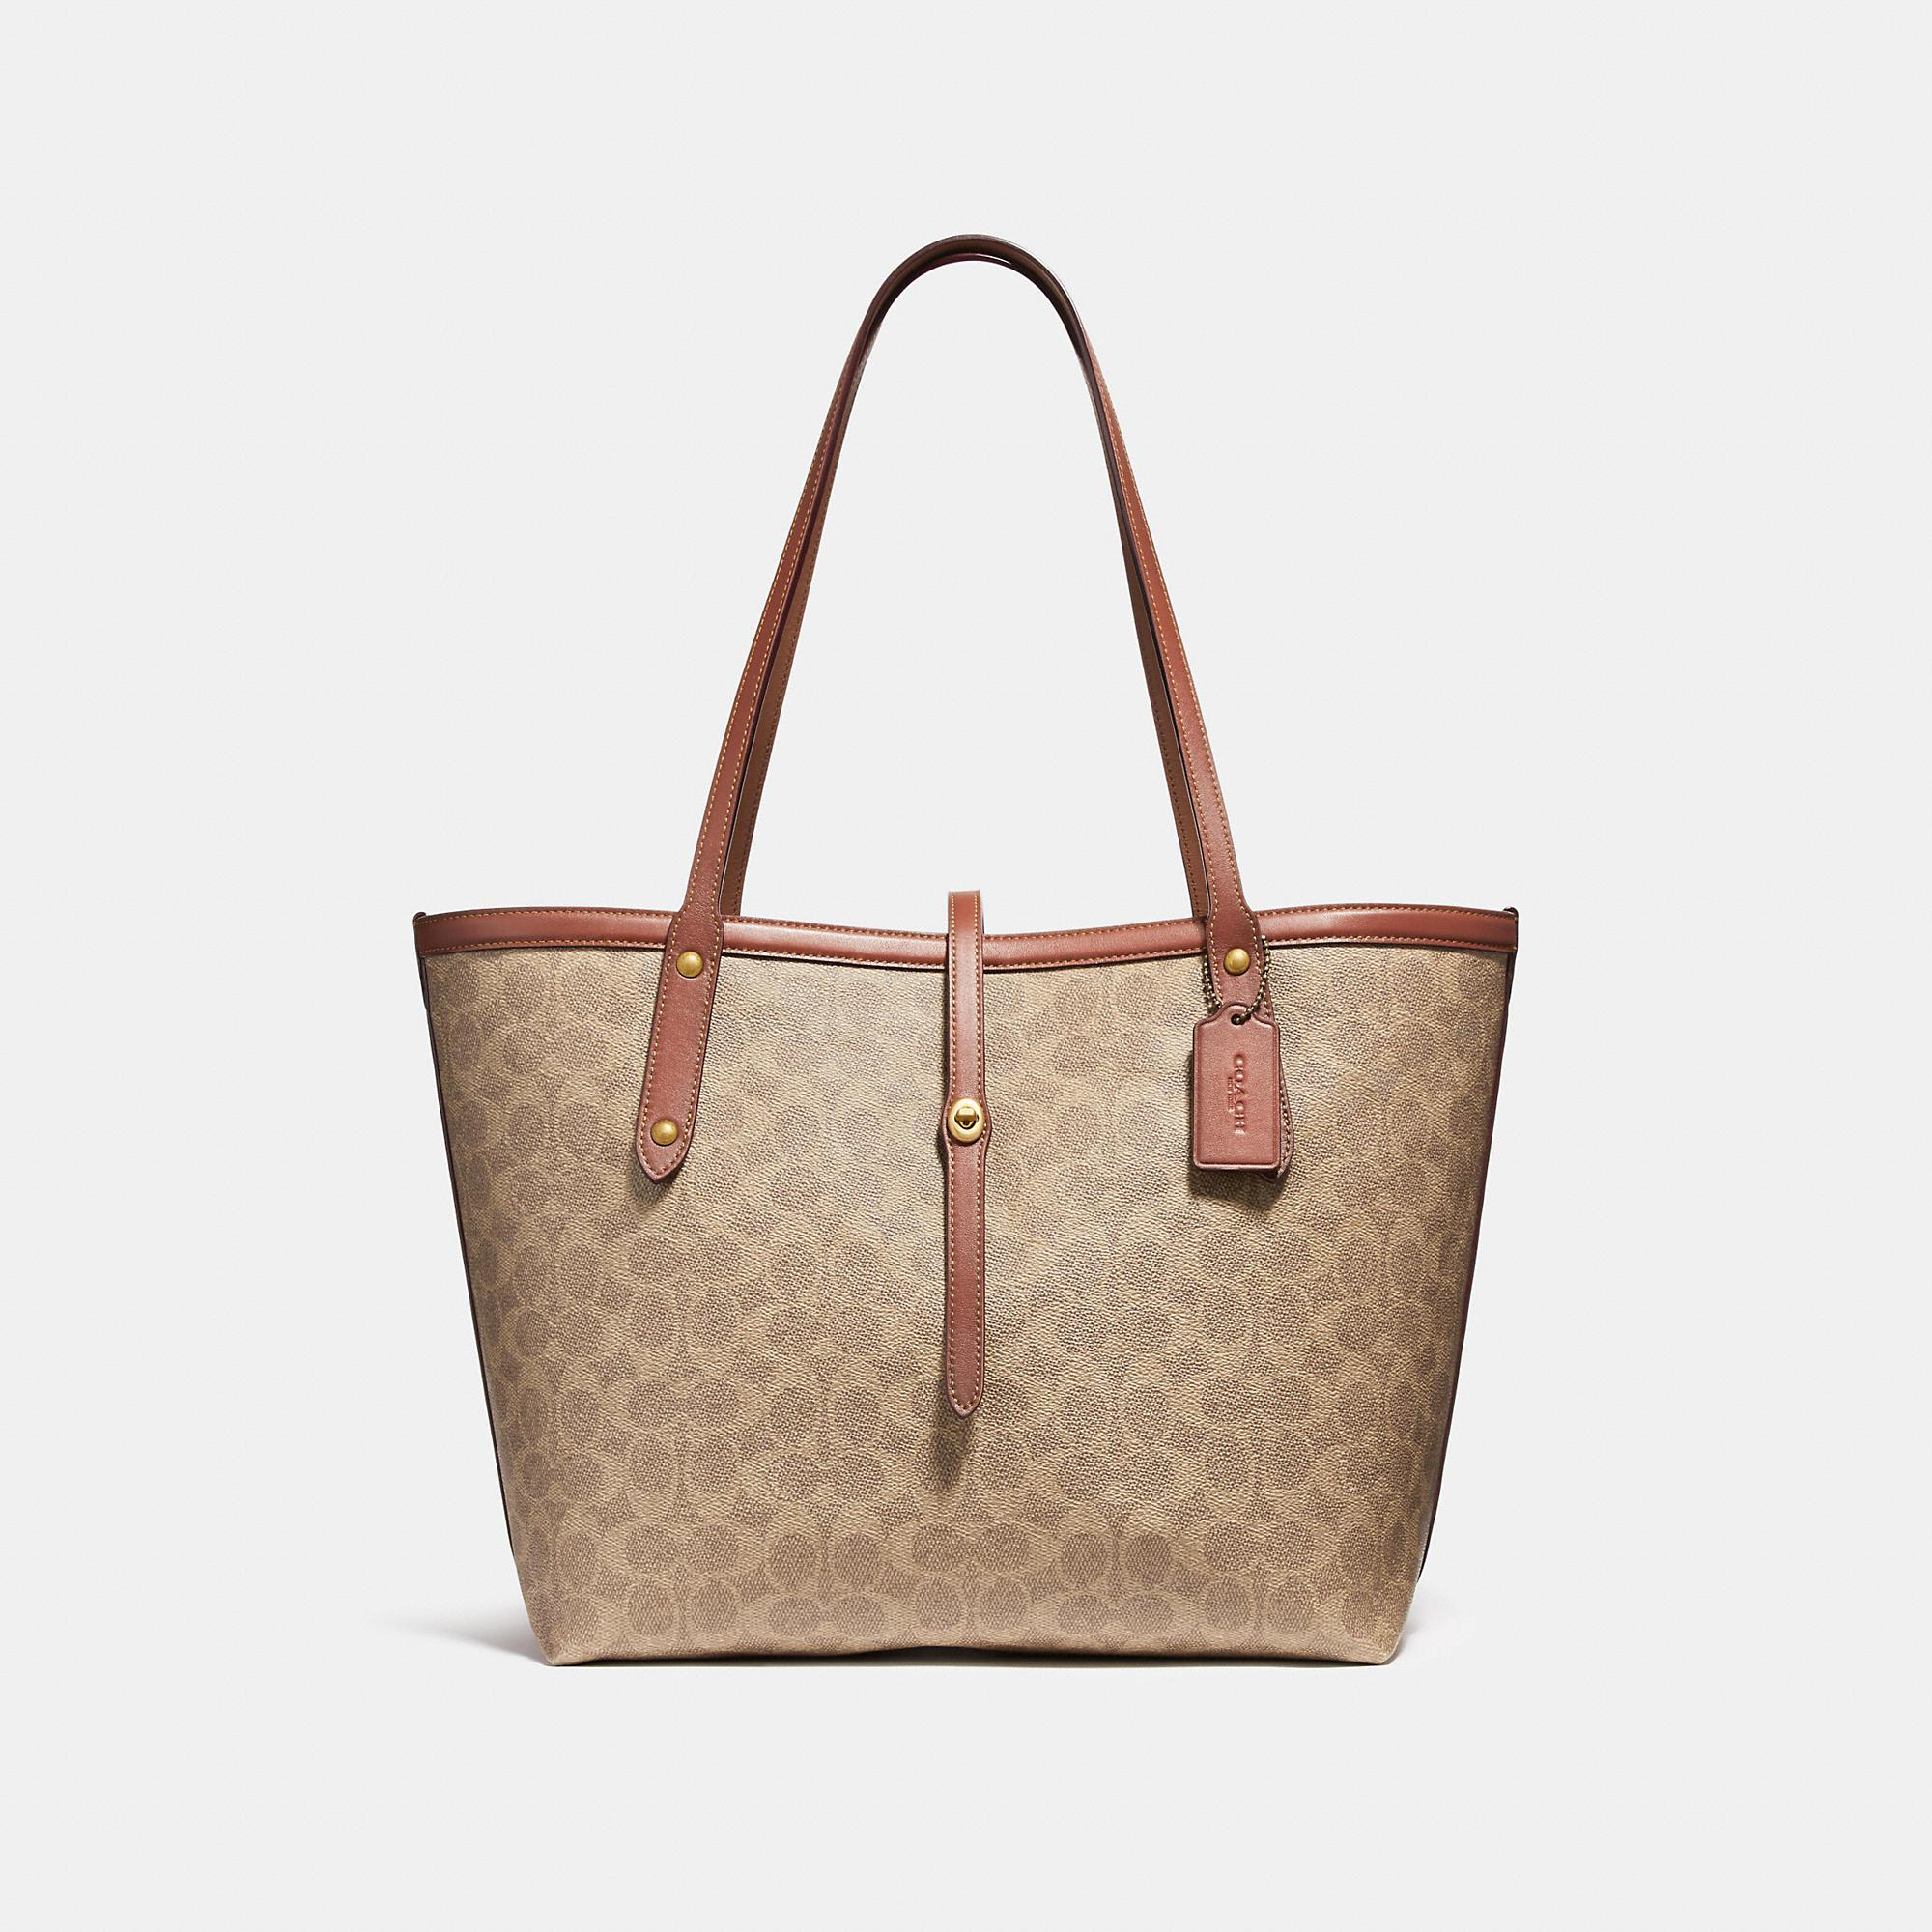 1b6ae7b5958b COACH Market Tote In Signature Canvas in Brown - Save 25% - Lyst